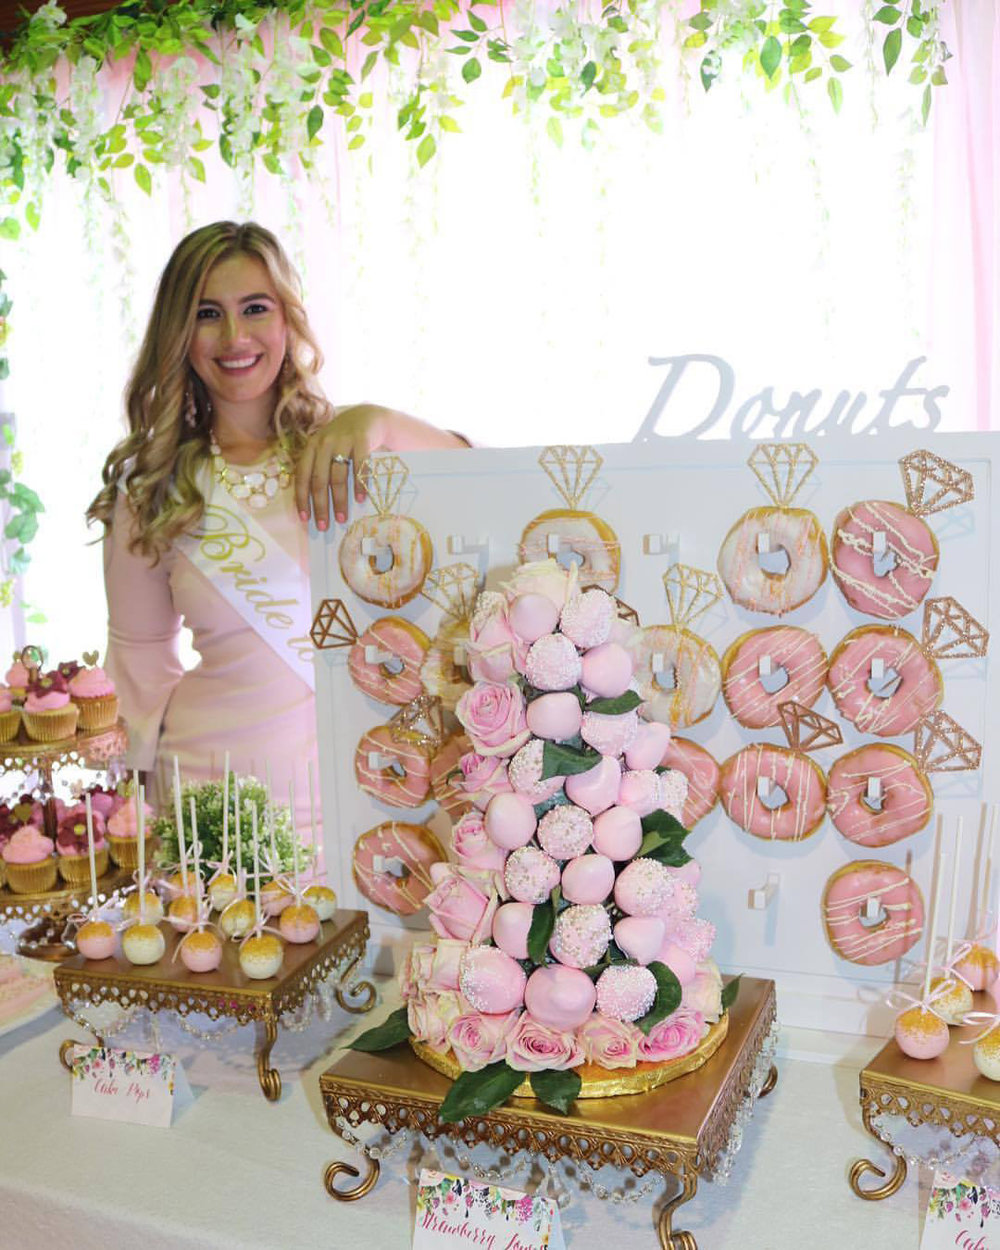 square-cake-stands-donut wall-macaron tower.jpg